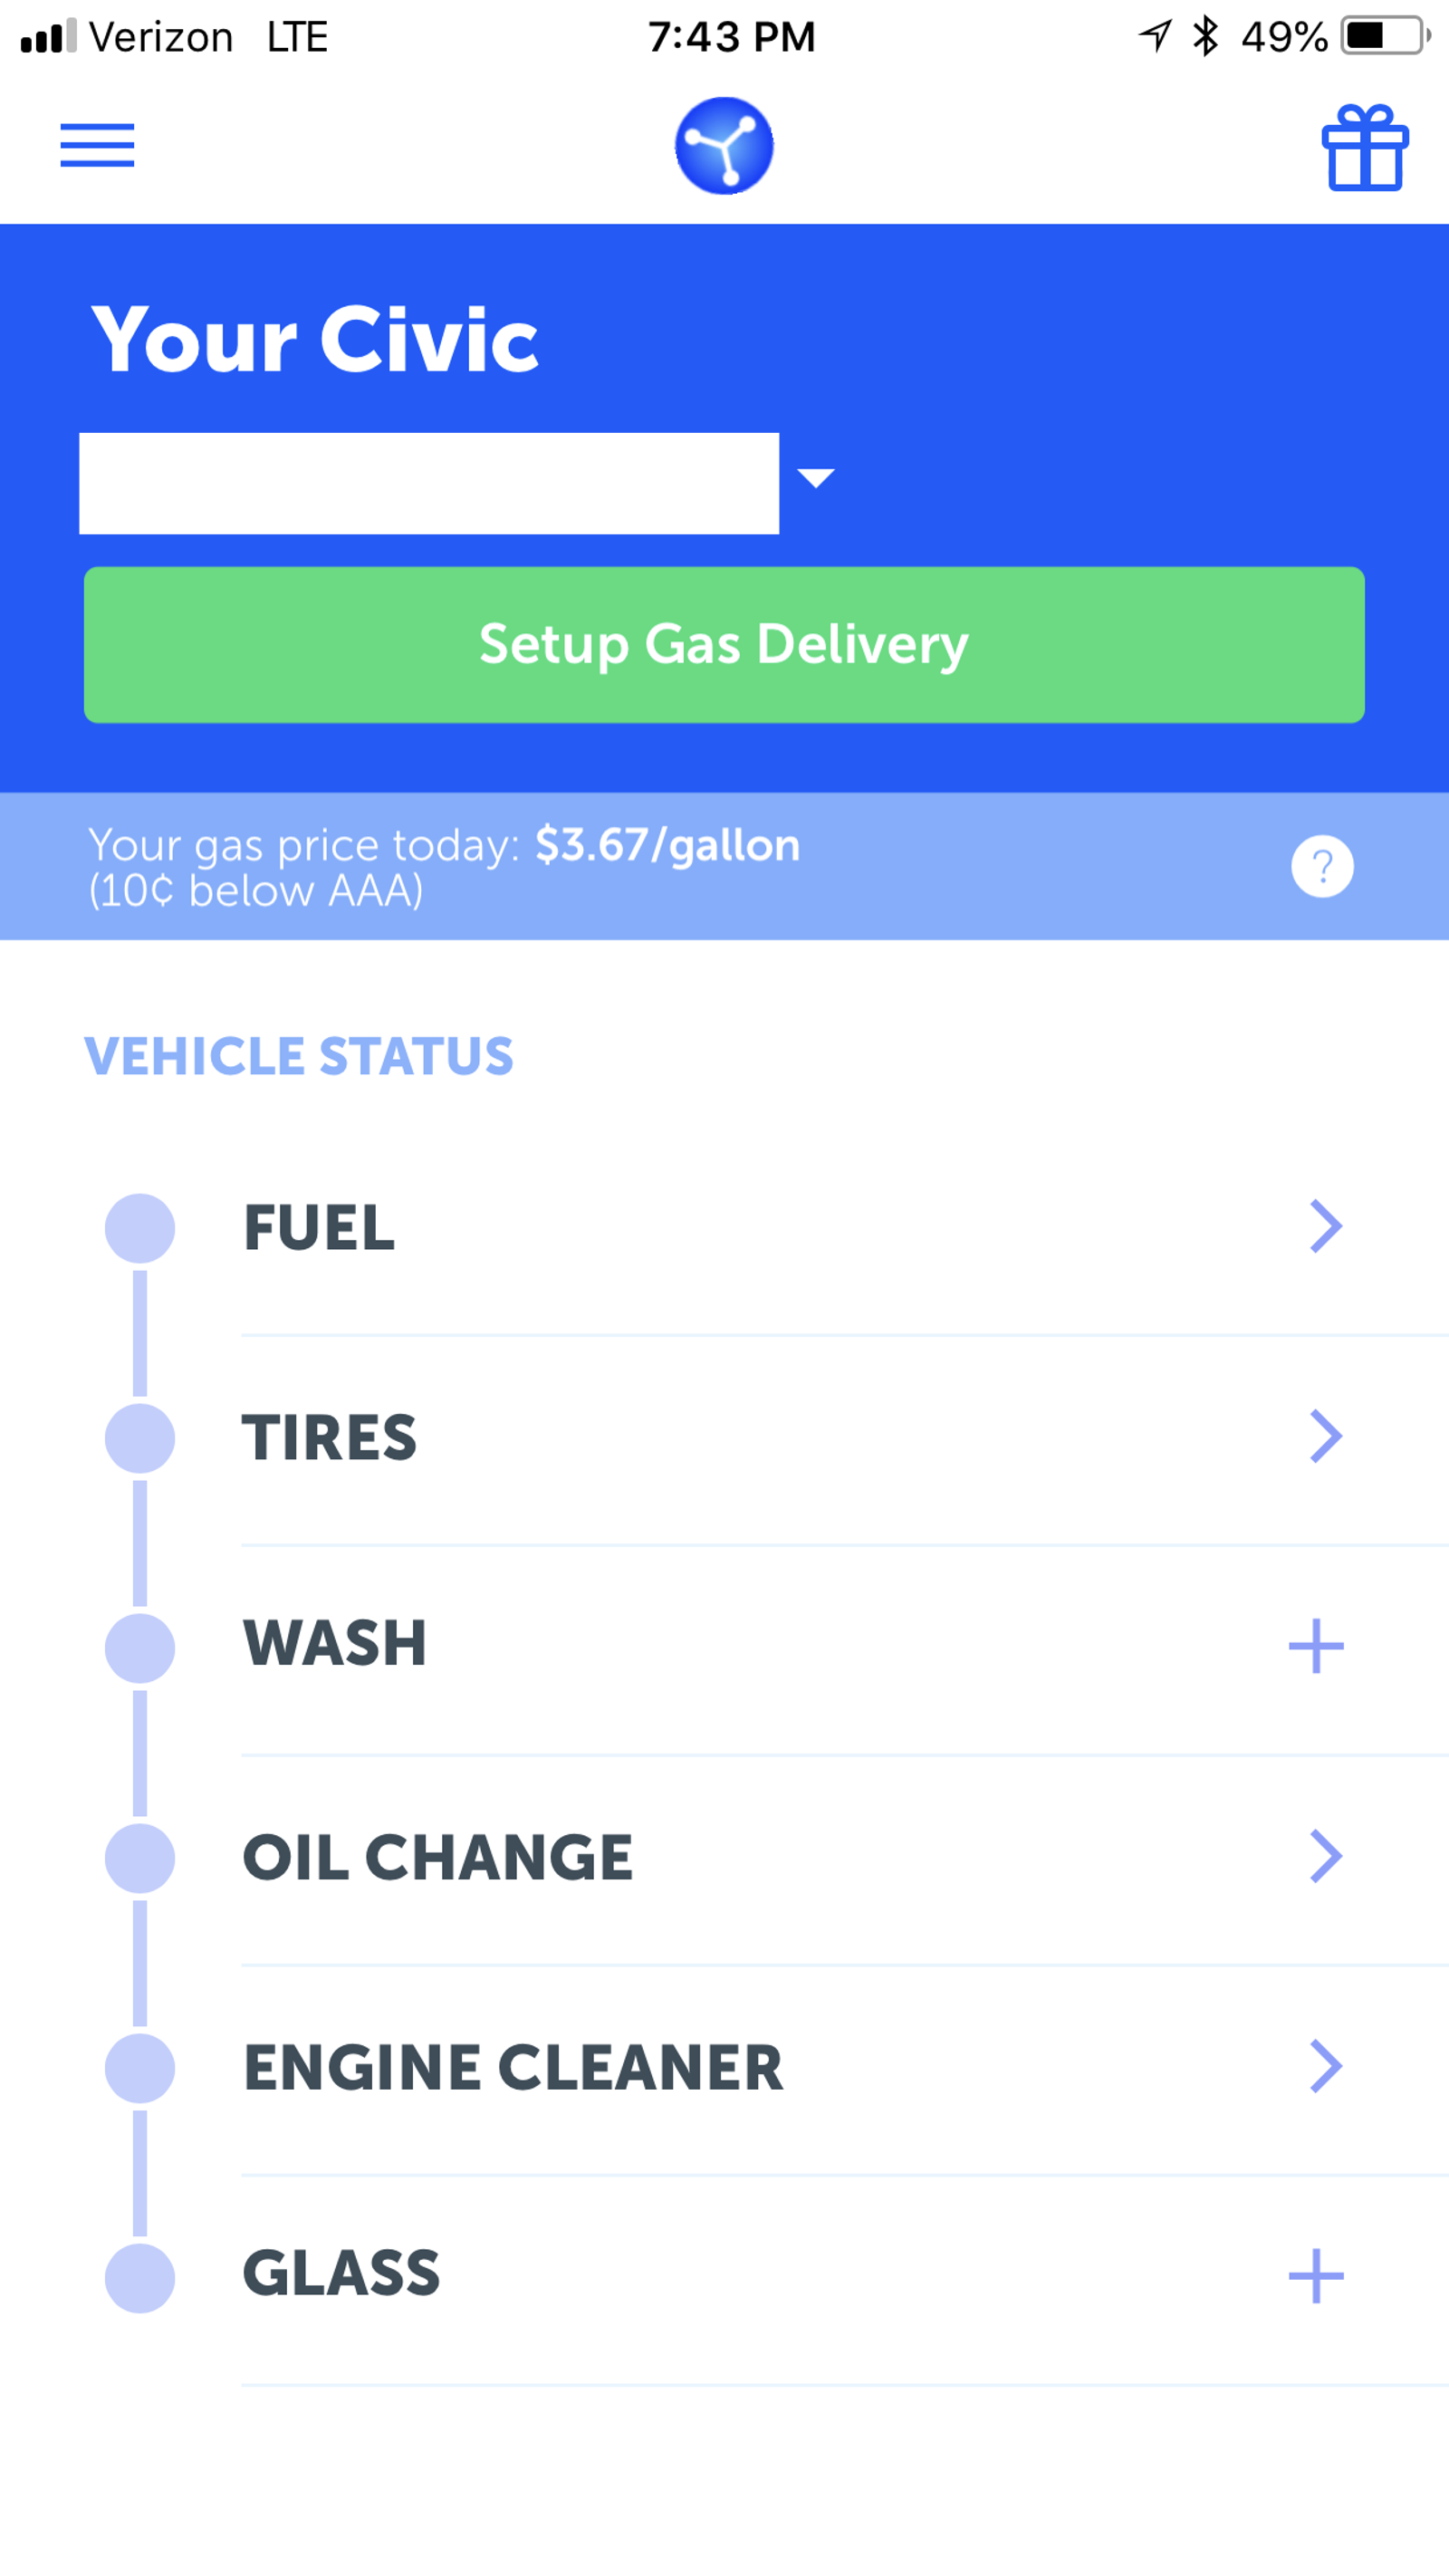 See all those options you can explore in addition to a simple gas delivery? That's a black hole for money.